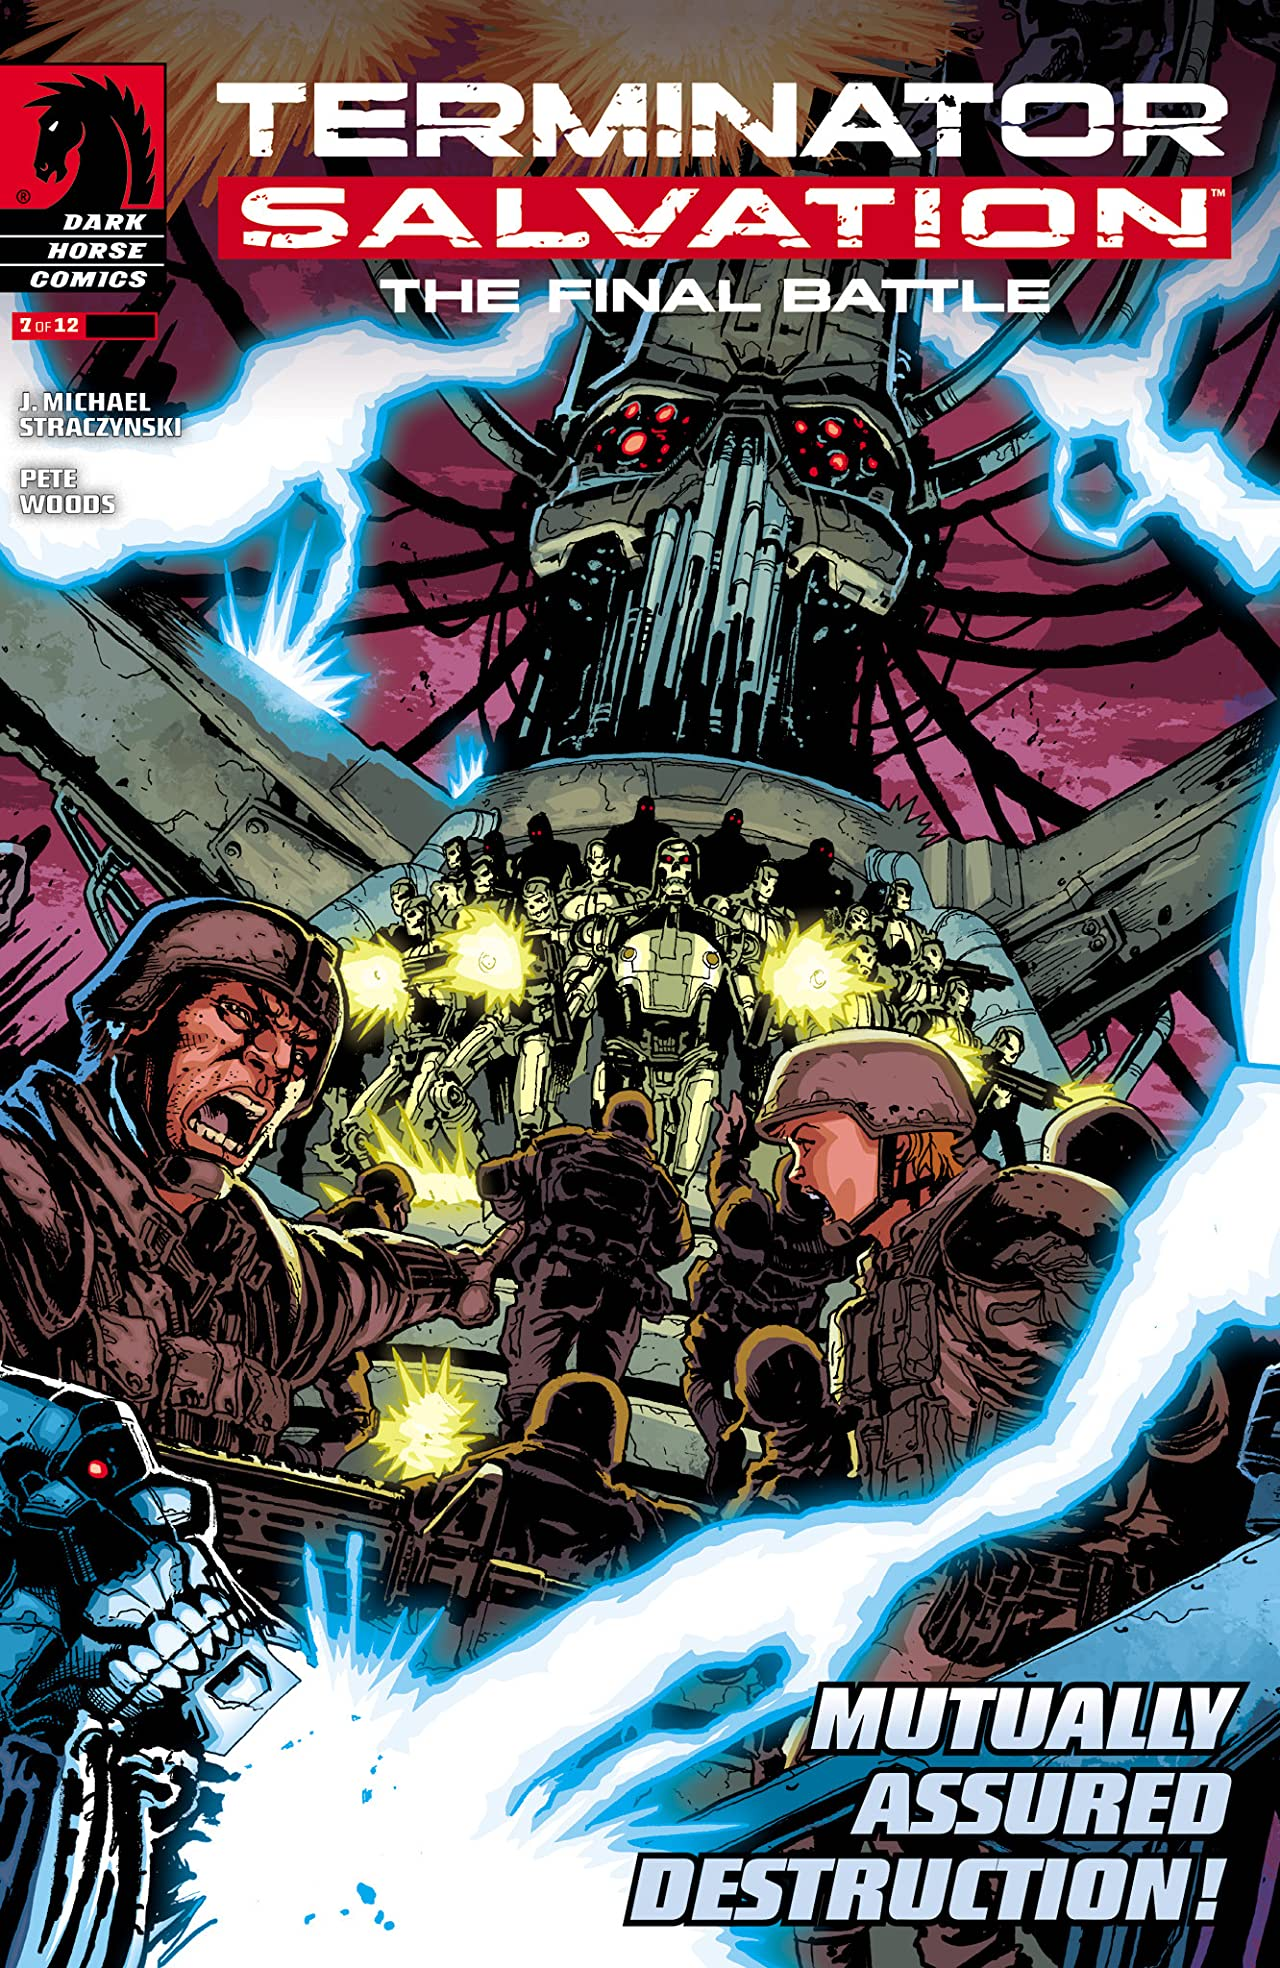 Terminator Salvation: The Final Battle #7